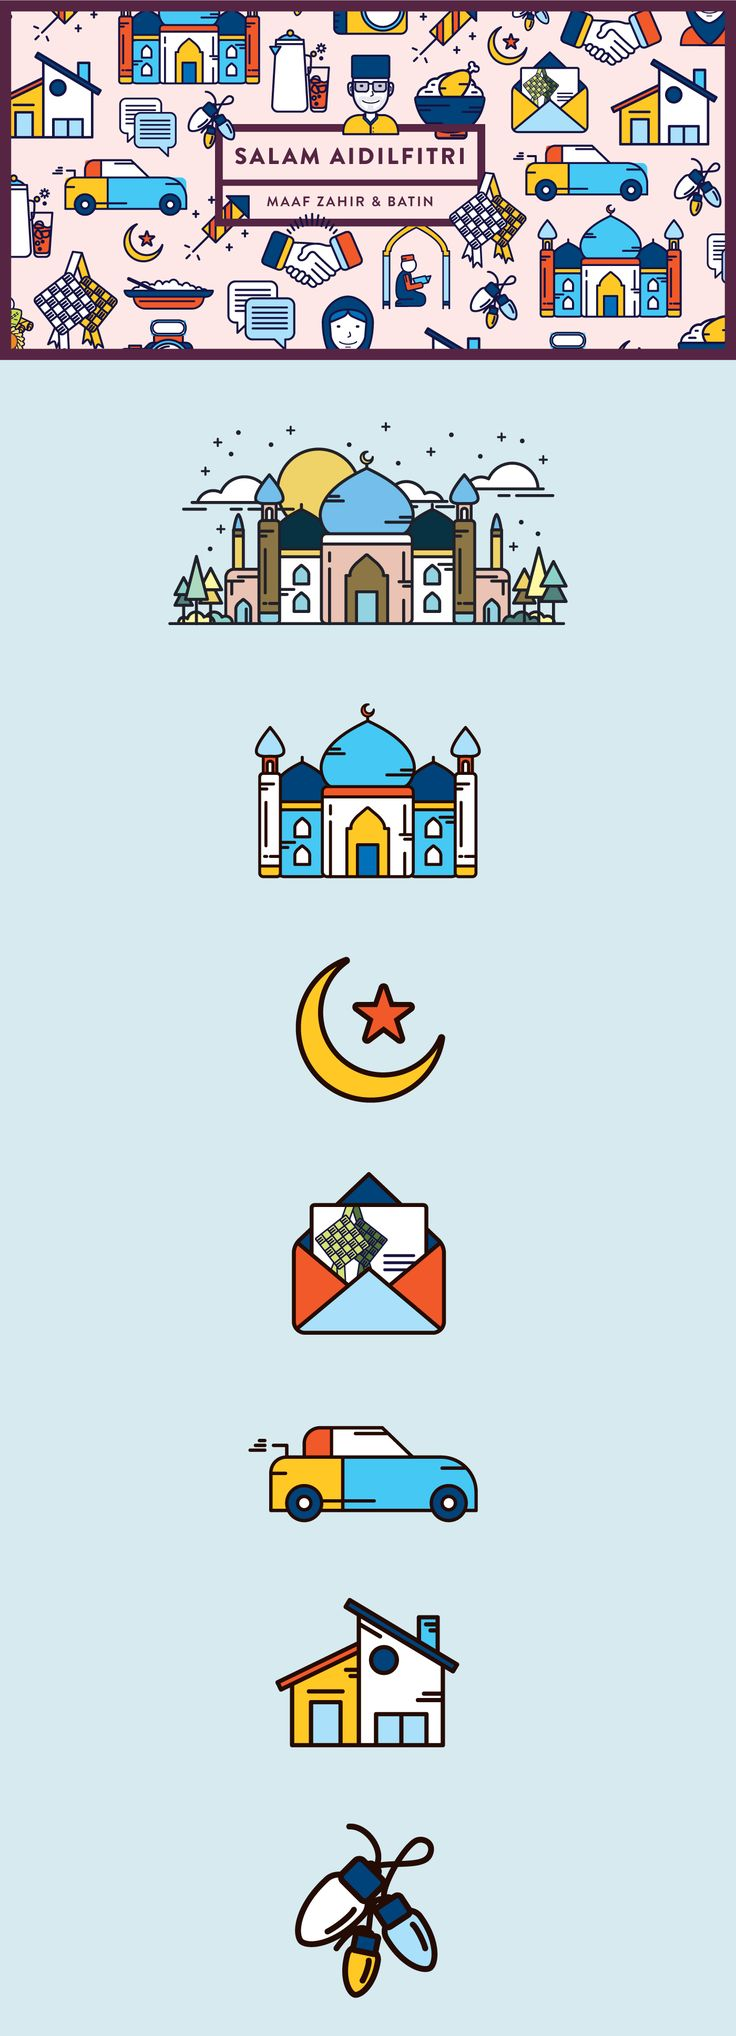 Marking the end of the Islamic holy month of Ramadan is the festival of Eid, known in Singapore as Hari Raya Aidilfitri. Here's a set of illustrations and icons of the festive season featuring the important elements and characteristics, translating the me…